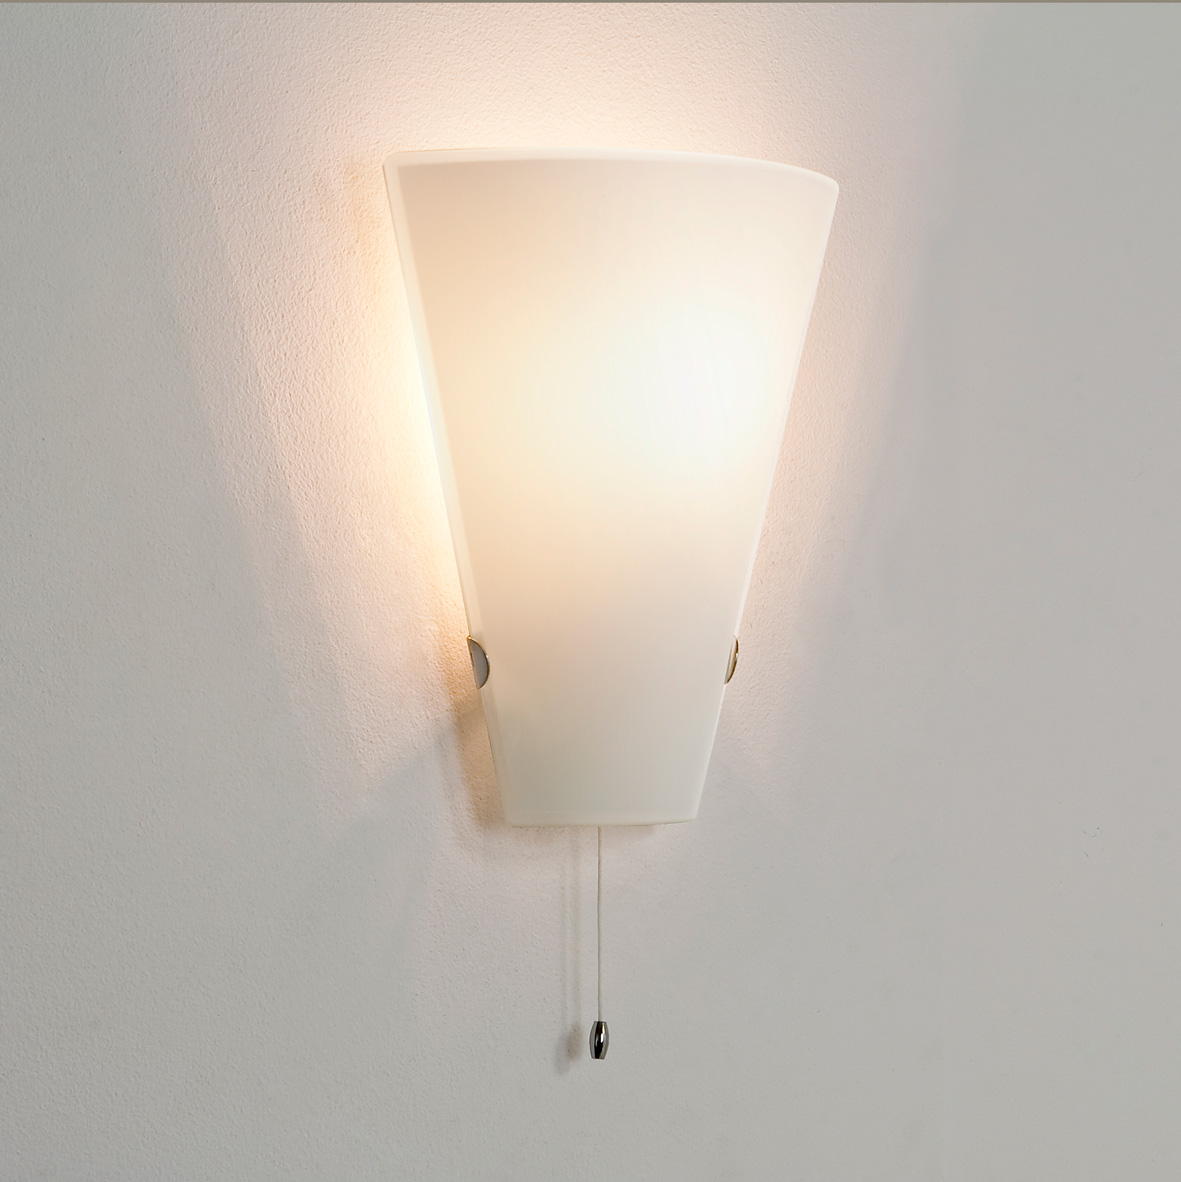 Wall Lights With Pull Cord And Matching Ceiling Light : dimmable pull cord switch wall light 60W E14 lamp IP20 glass eBay - Wall lights, LED bathroom ...